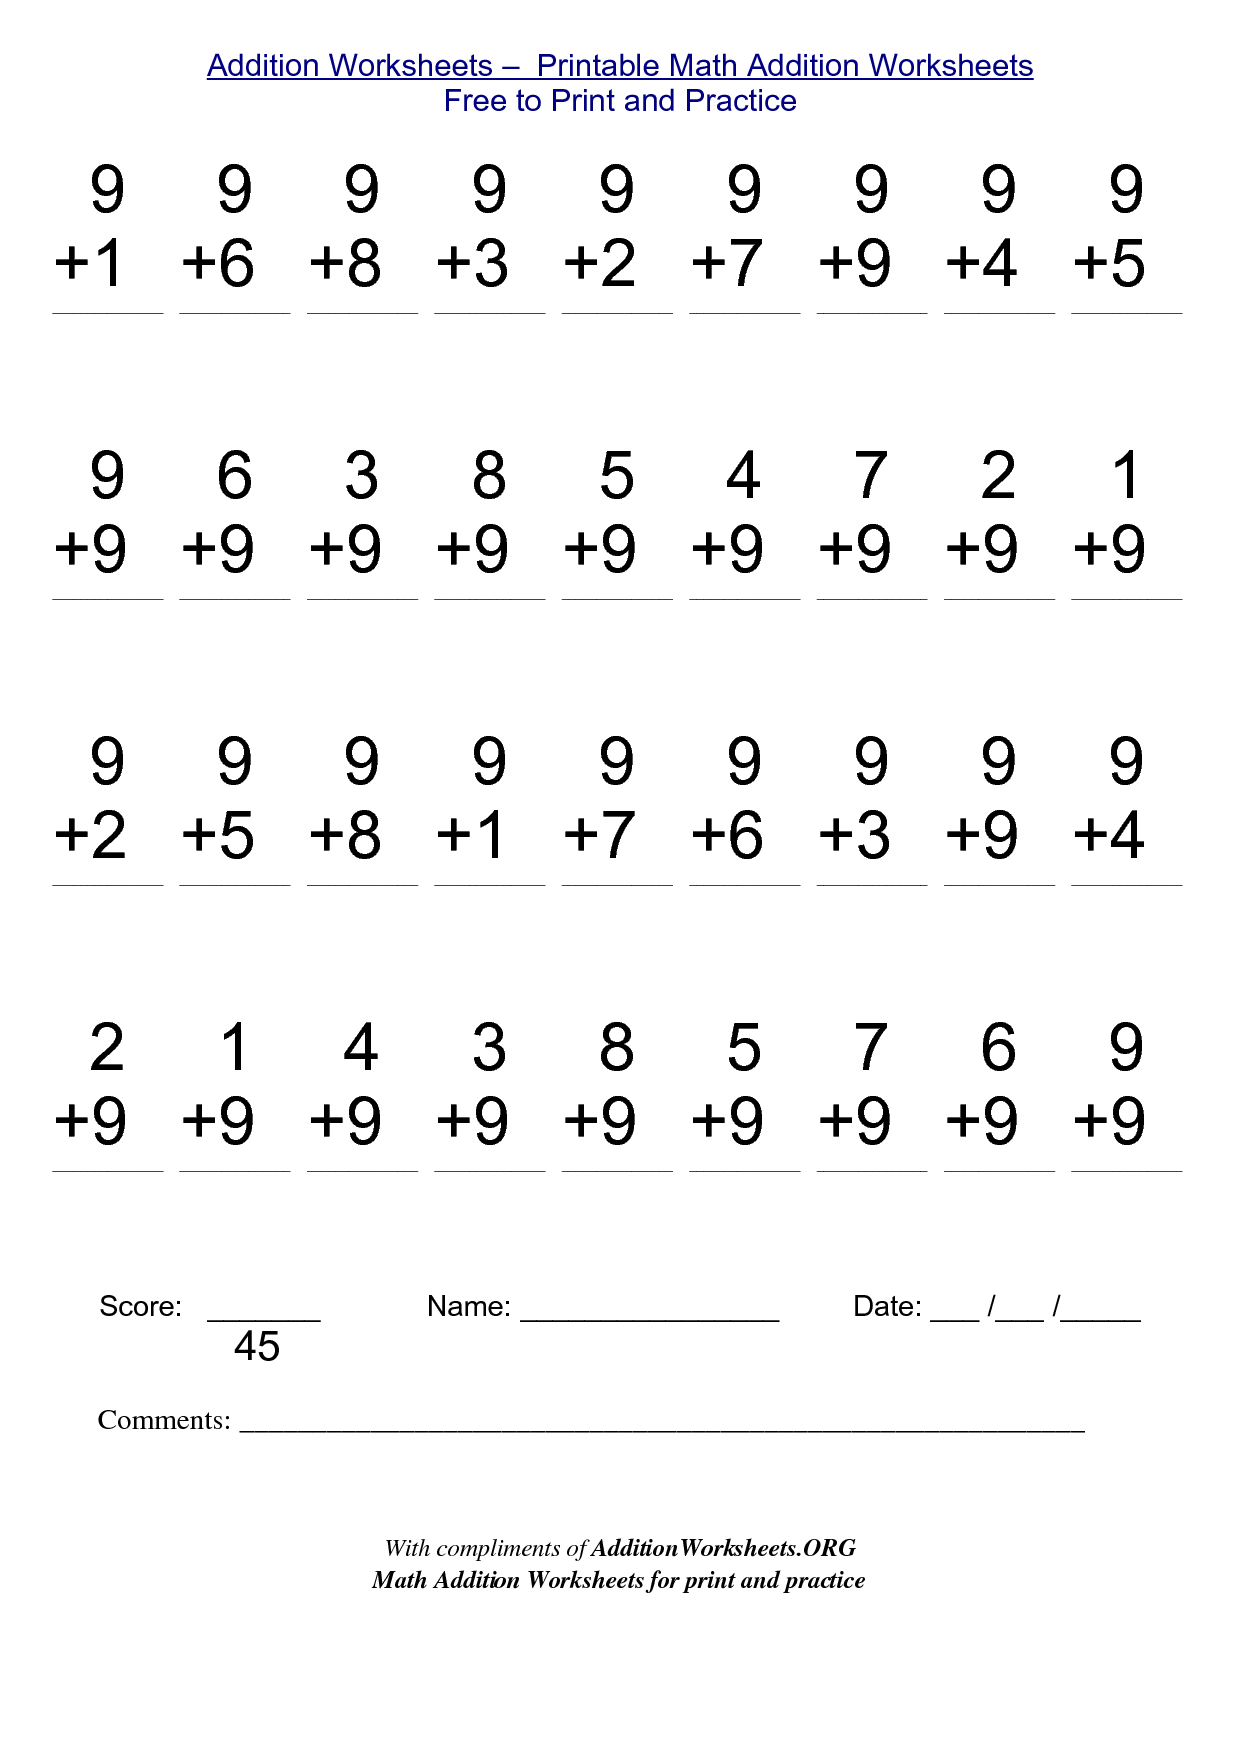 Worksheets Free Printable Third Grade Math Worksheets math worksheets for free to print alot com me pinterest addition and worksheets